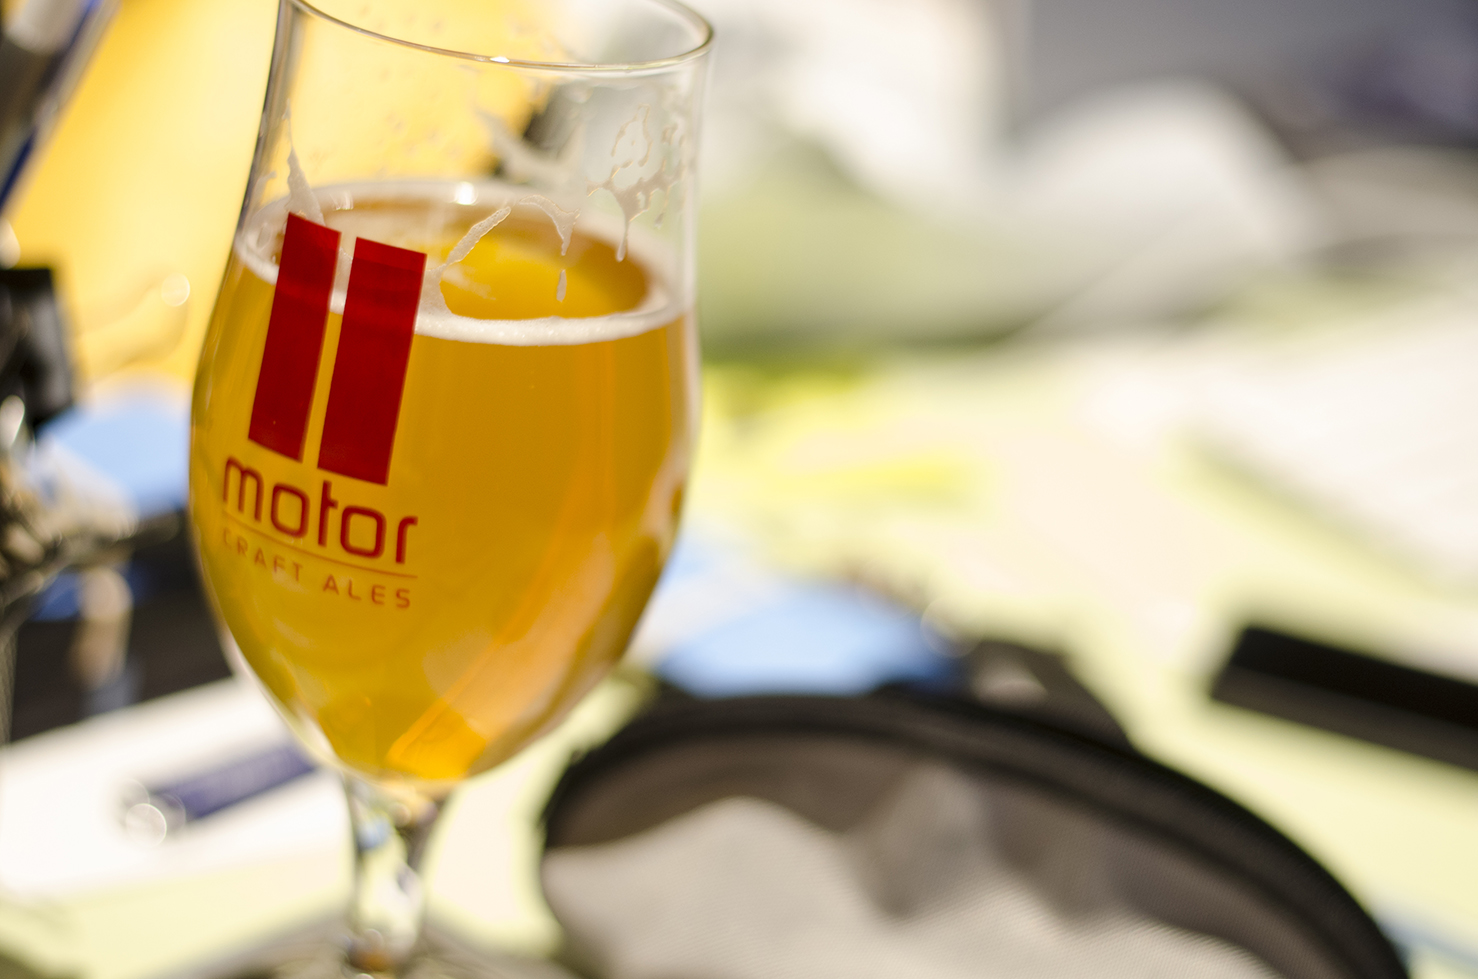 Motor Craft Ales is expanding!